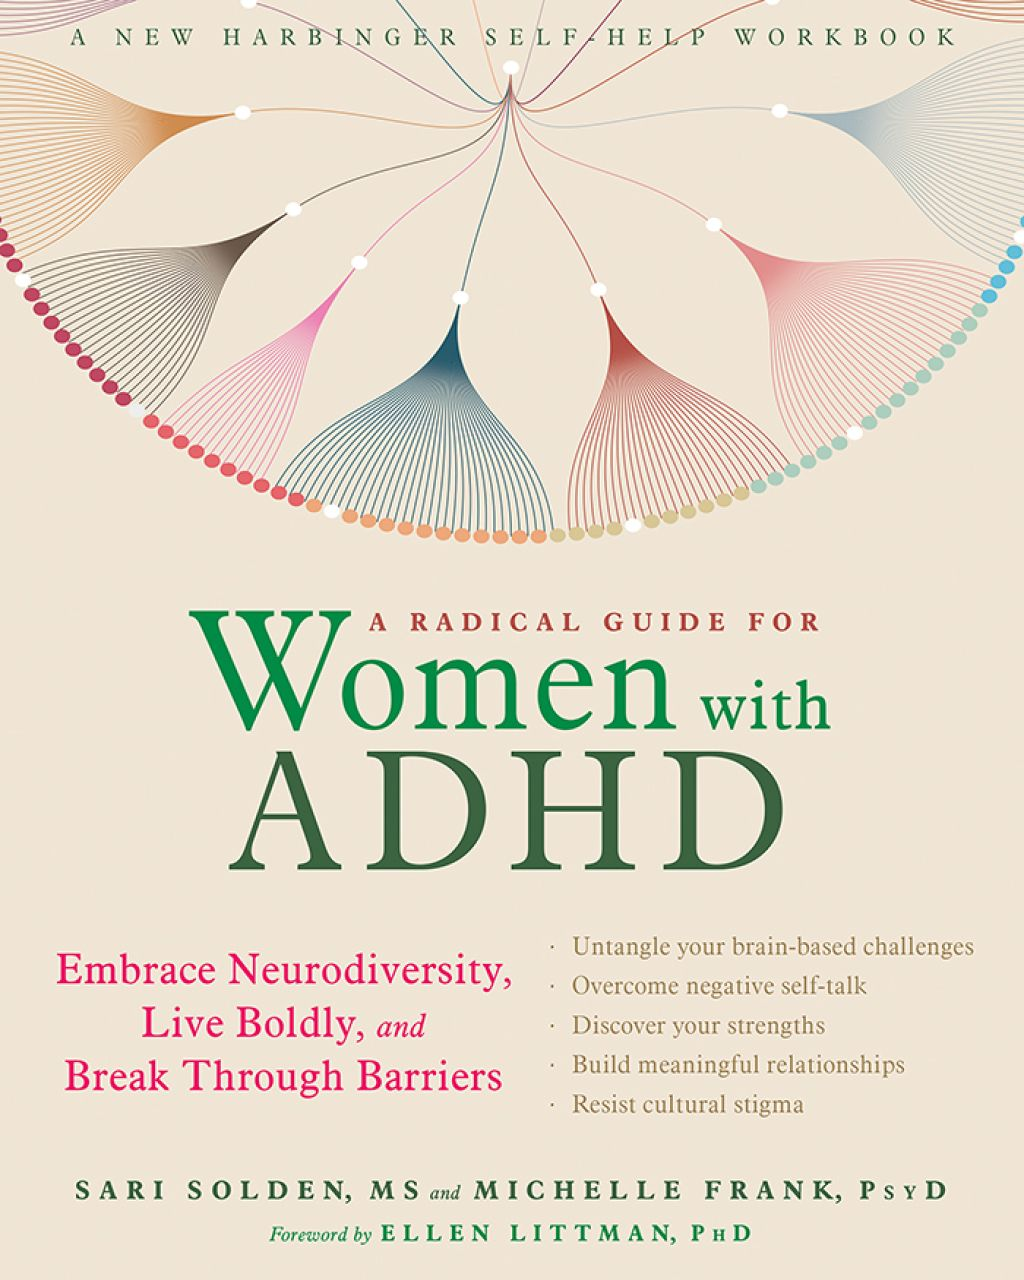 A radical guide for woman with ADHD